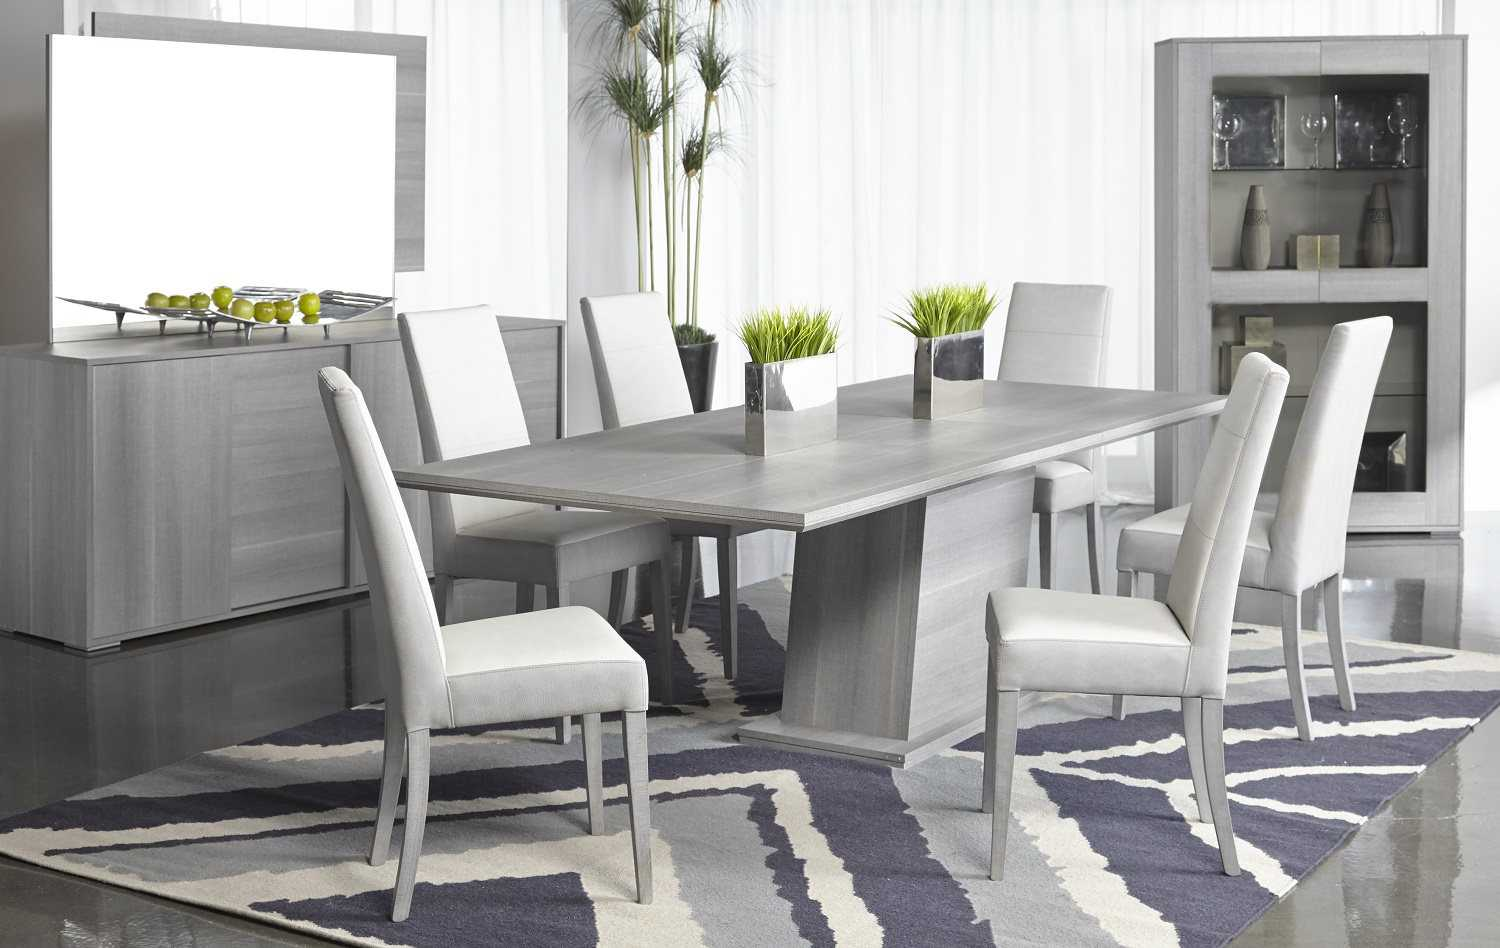 Star International Furniture Vivente Forte Dining Room Set